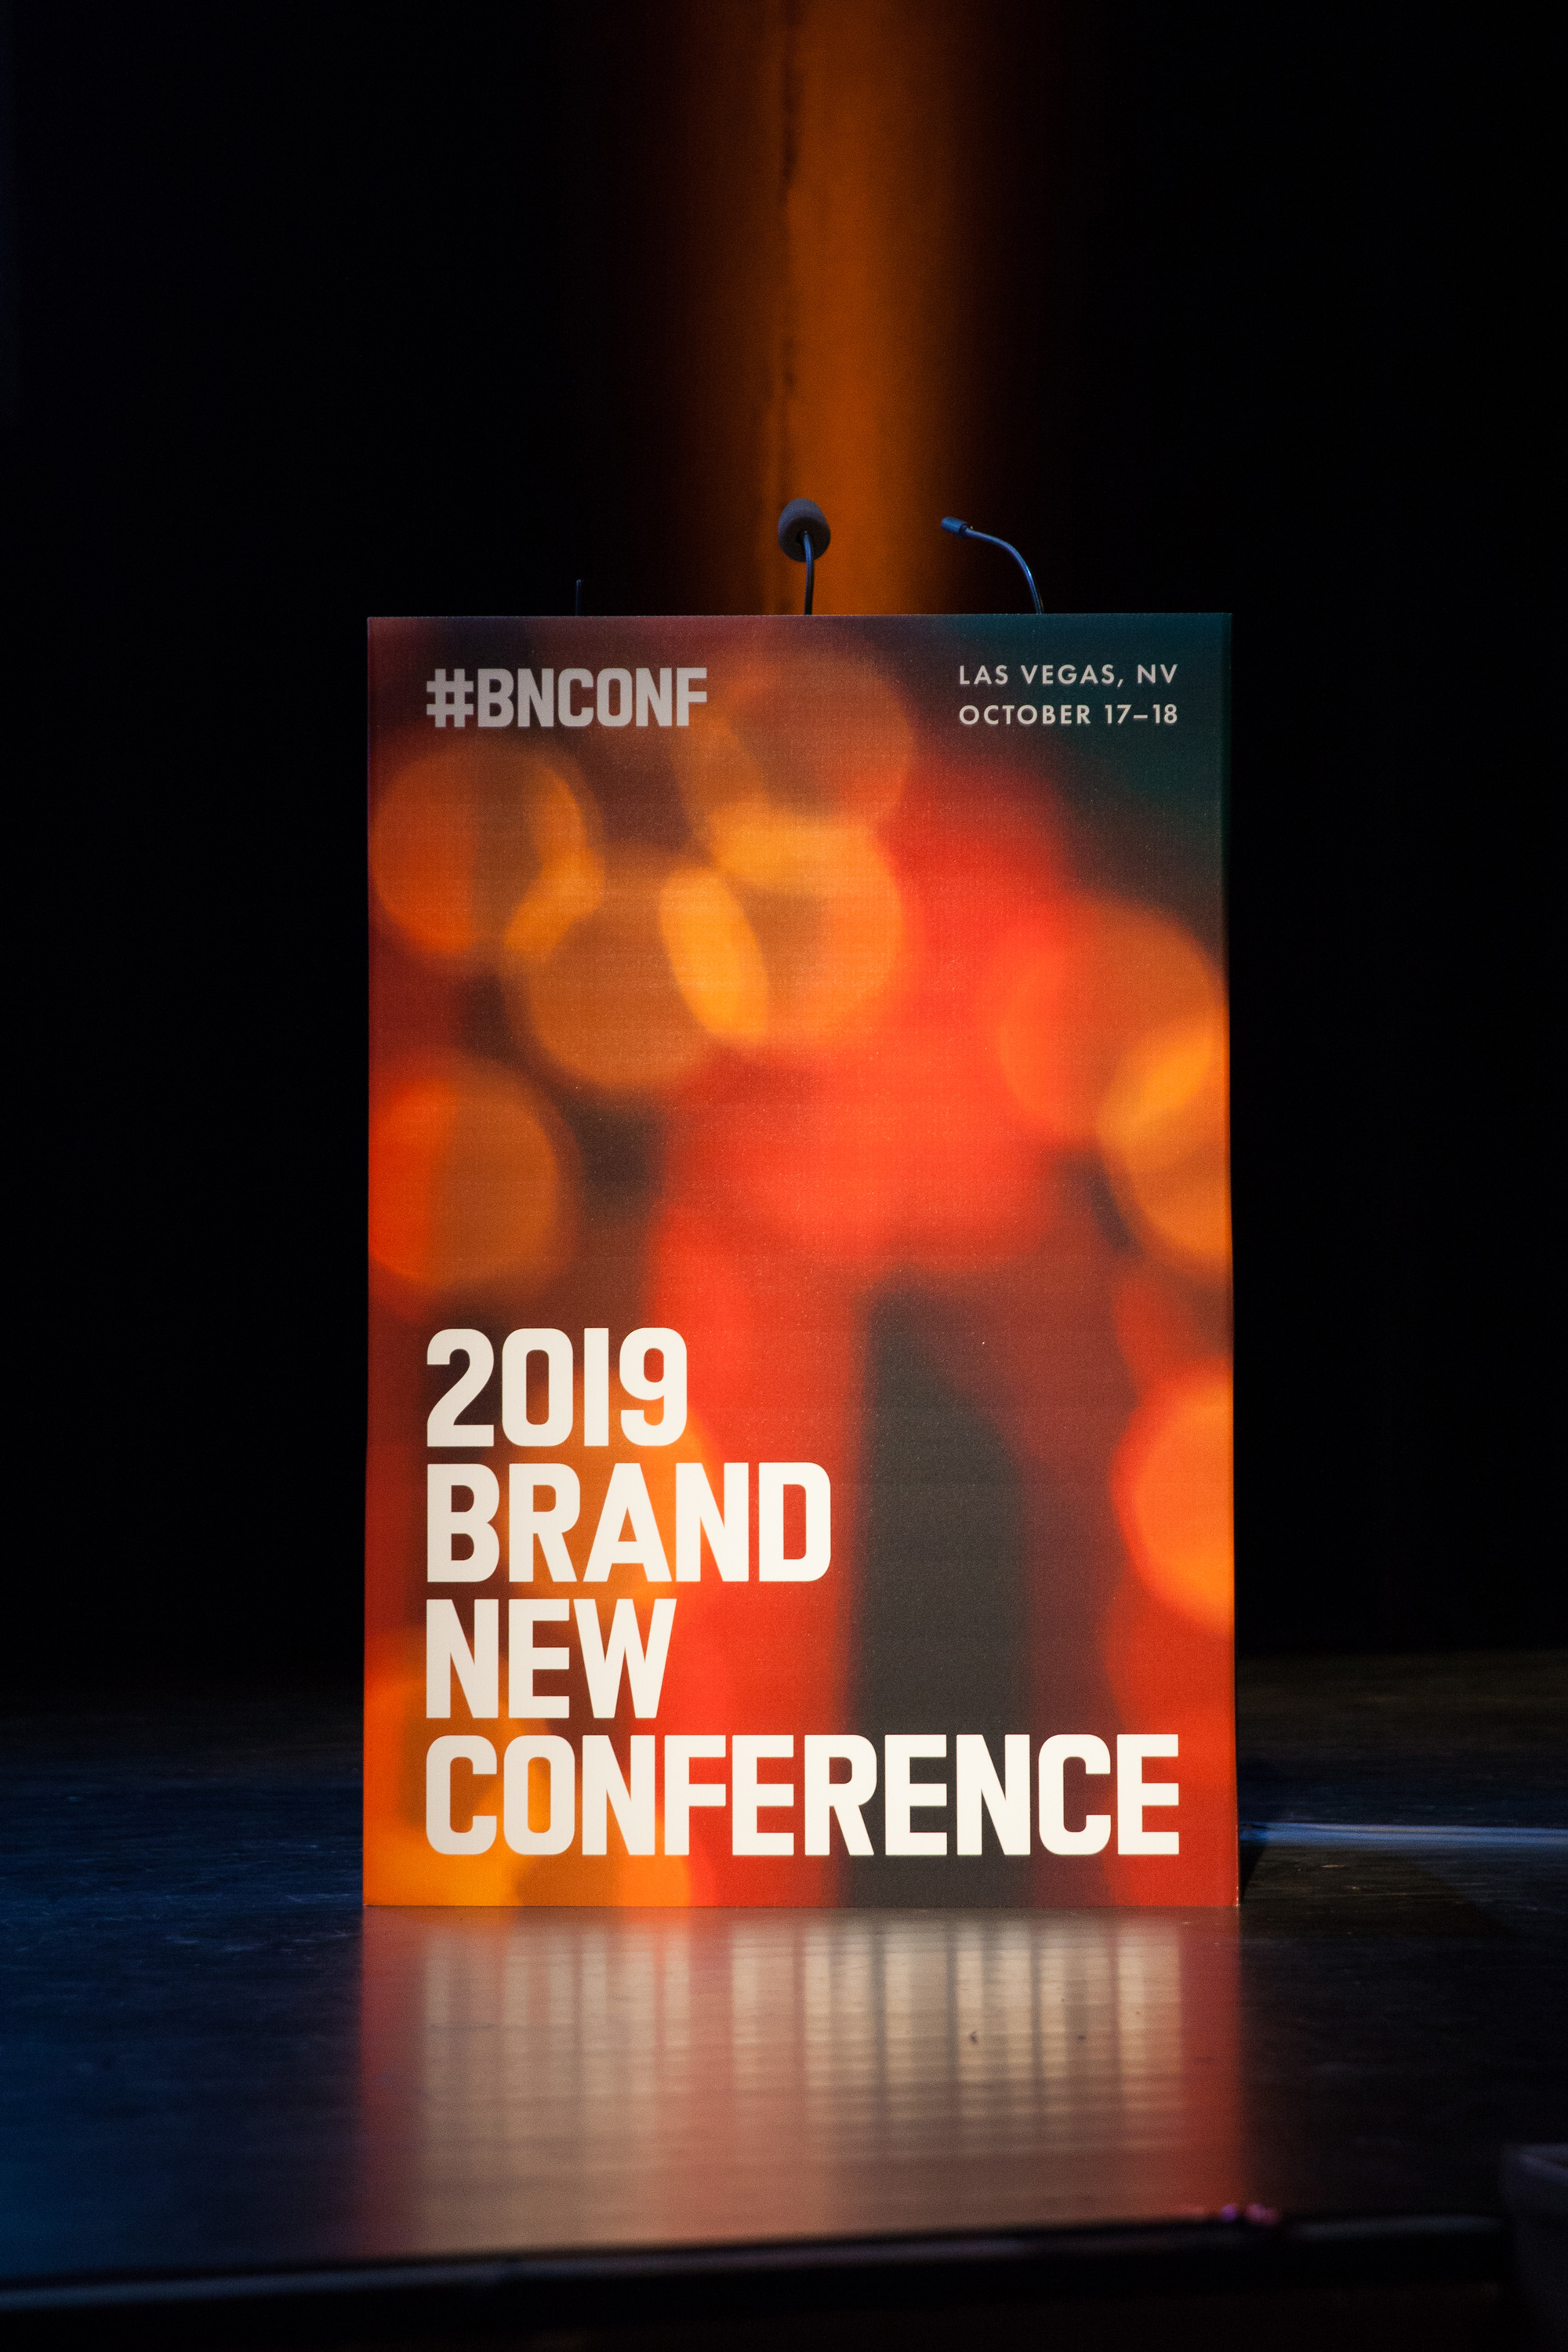 2019 Brand New Conference Identity